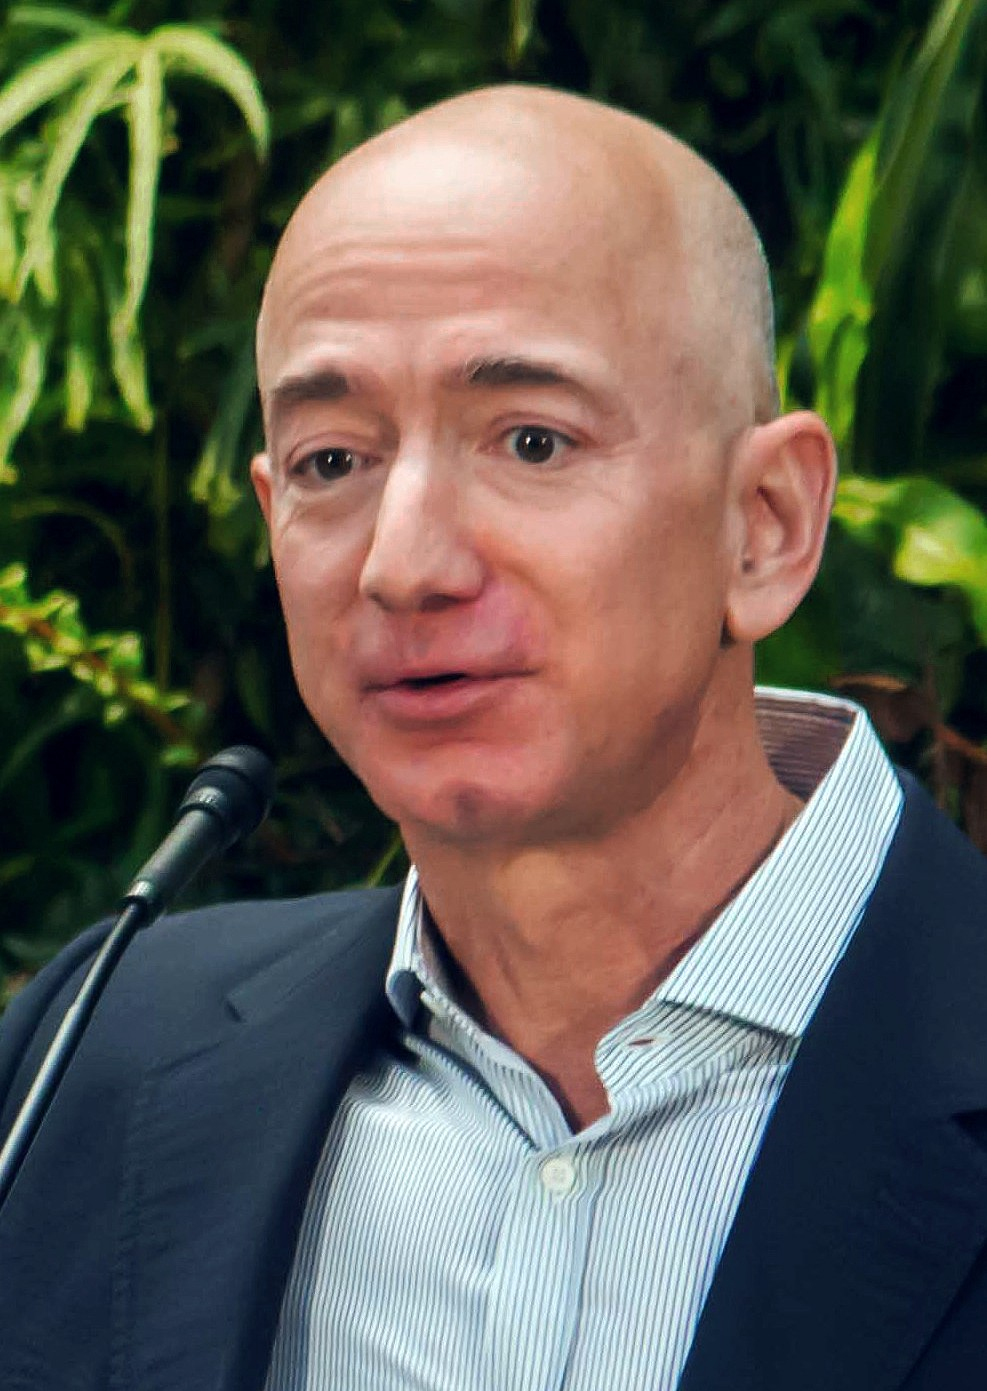 Jeff Bezos in Space! : Top 10 Breaking News in business right now